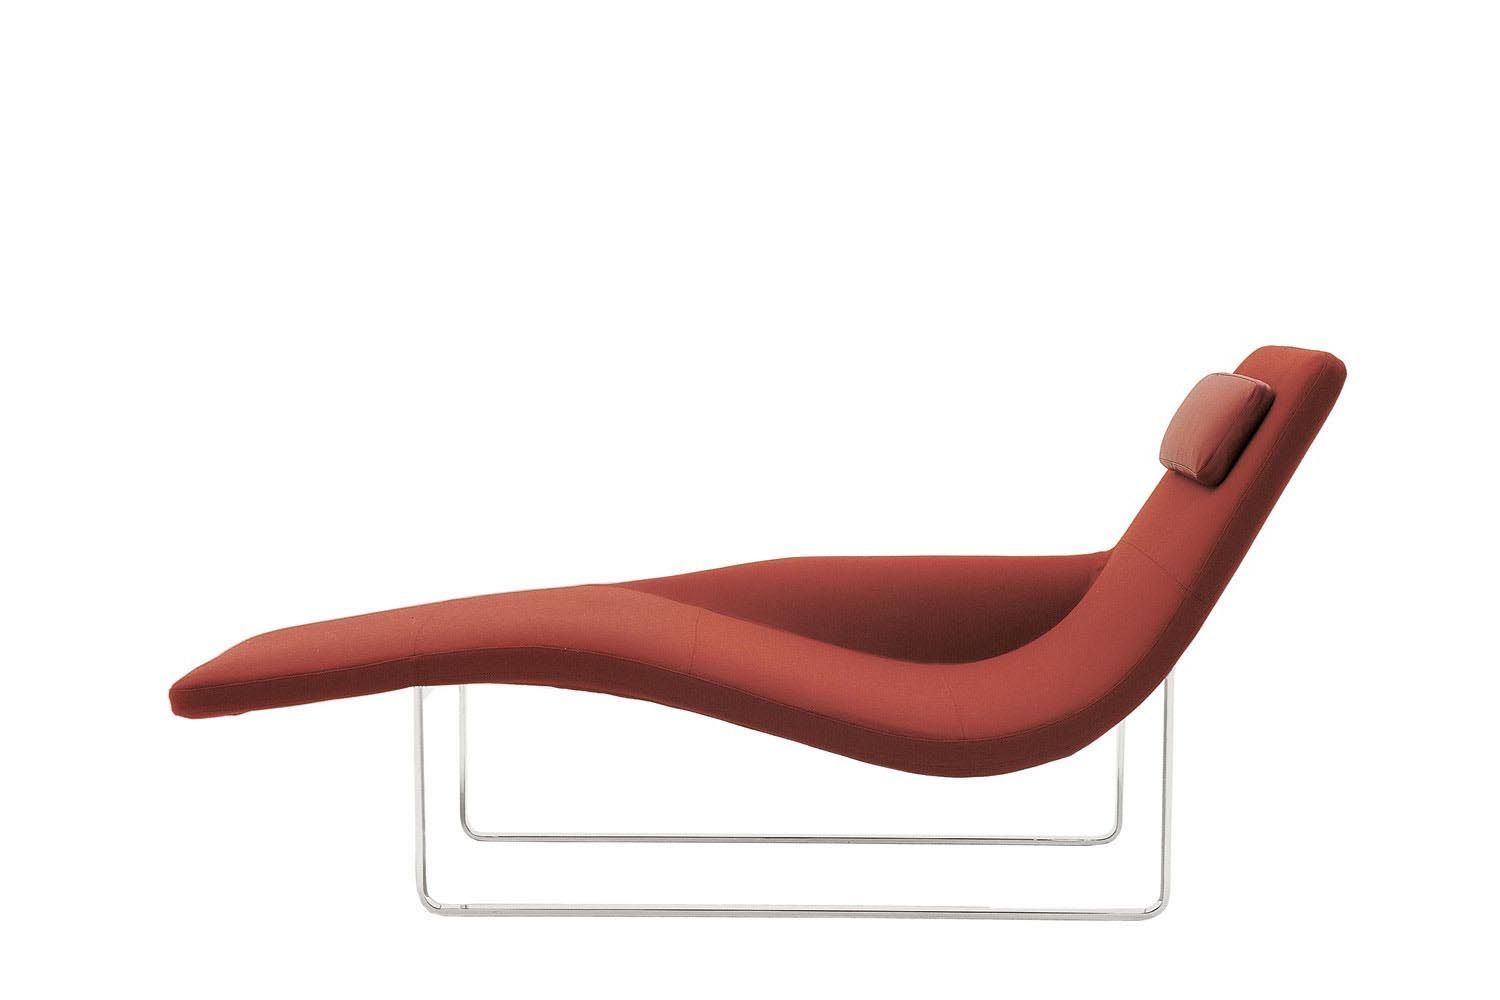 Landscape 05 Chaise Longue By Jeffrey Bernett For B B Italia  # Muebles Jeffrey